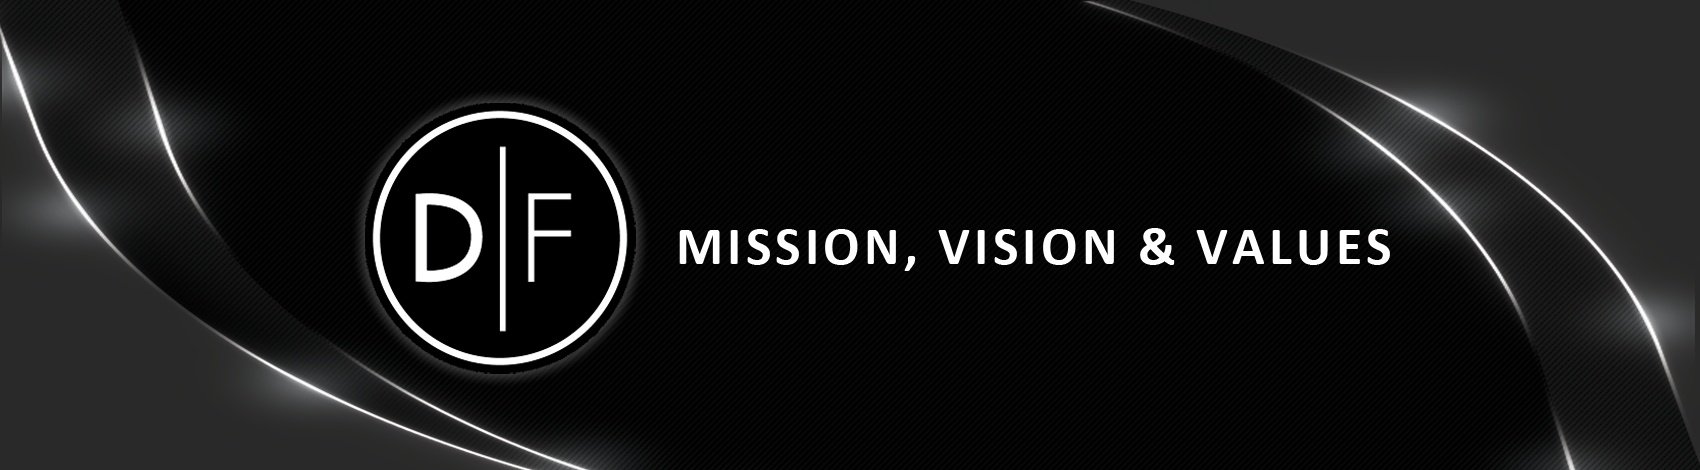 DF-Media Mission, Vision & Values